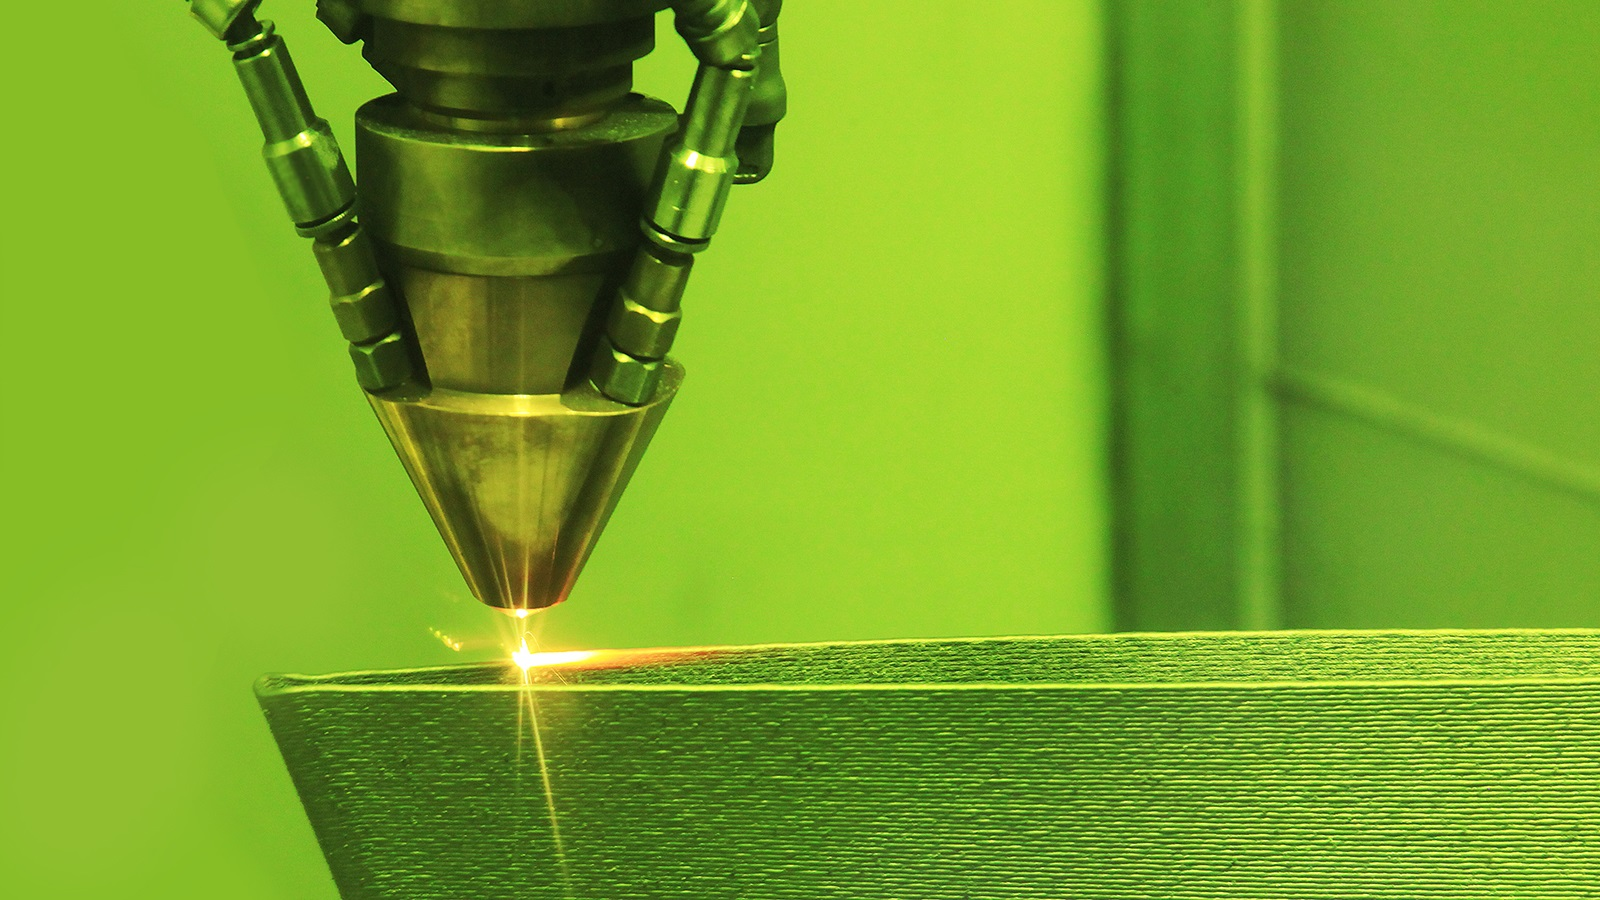 When 3D printing metallic parts, Argonne scientists found a correlation between temperatures at the surface and defects that form below. (Image by Shutterstock / sspopov.)